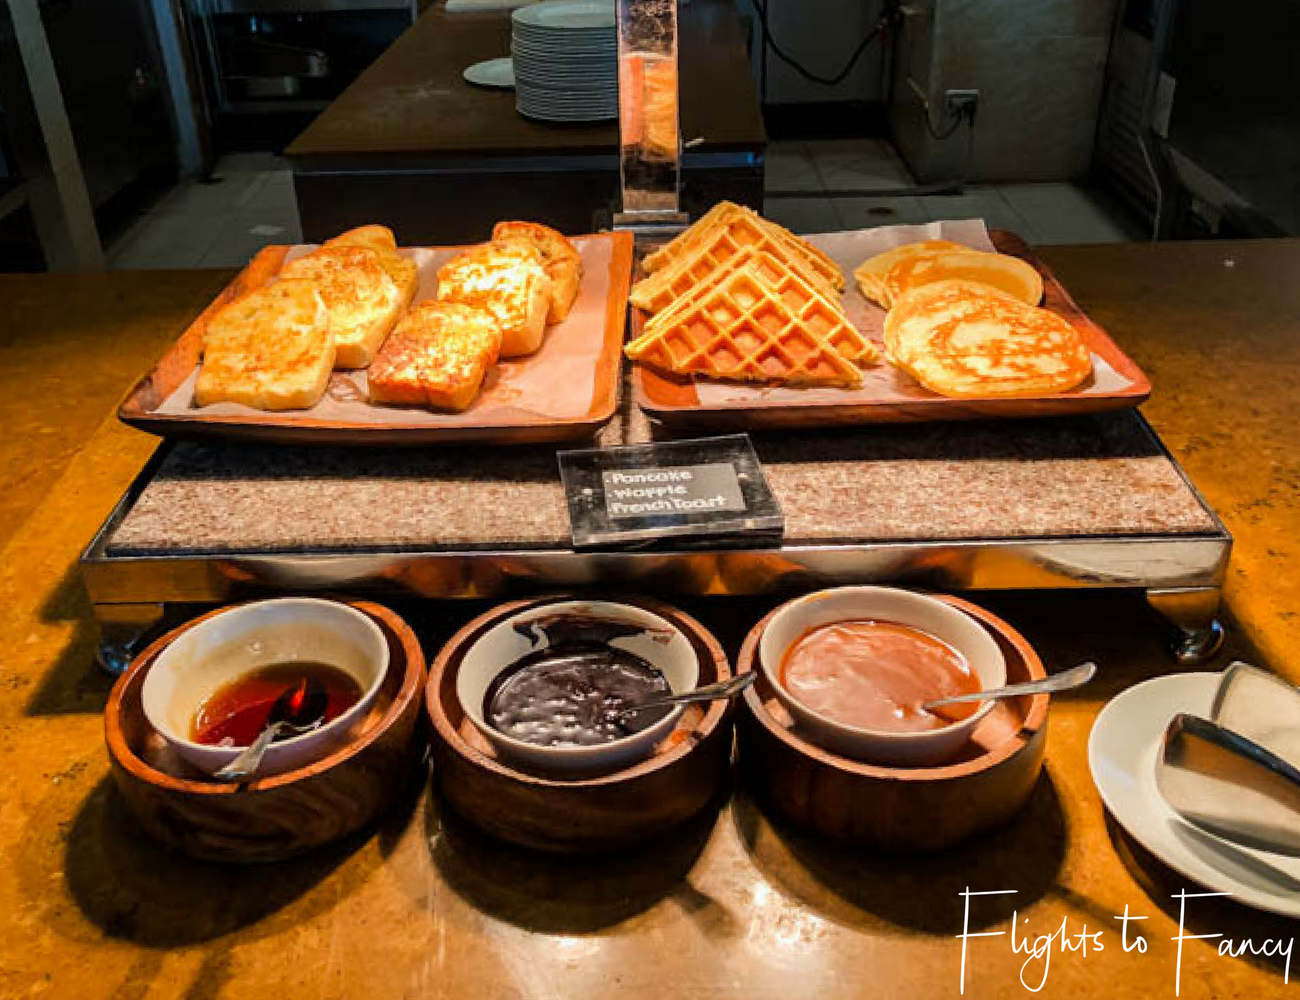 Flights To Fancy @ Raffles Makati Manila - Breakfast Spread